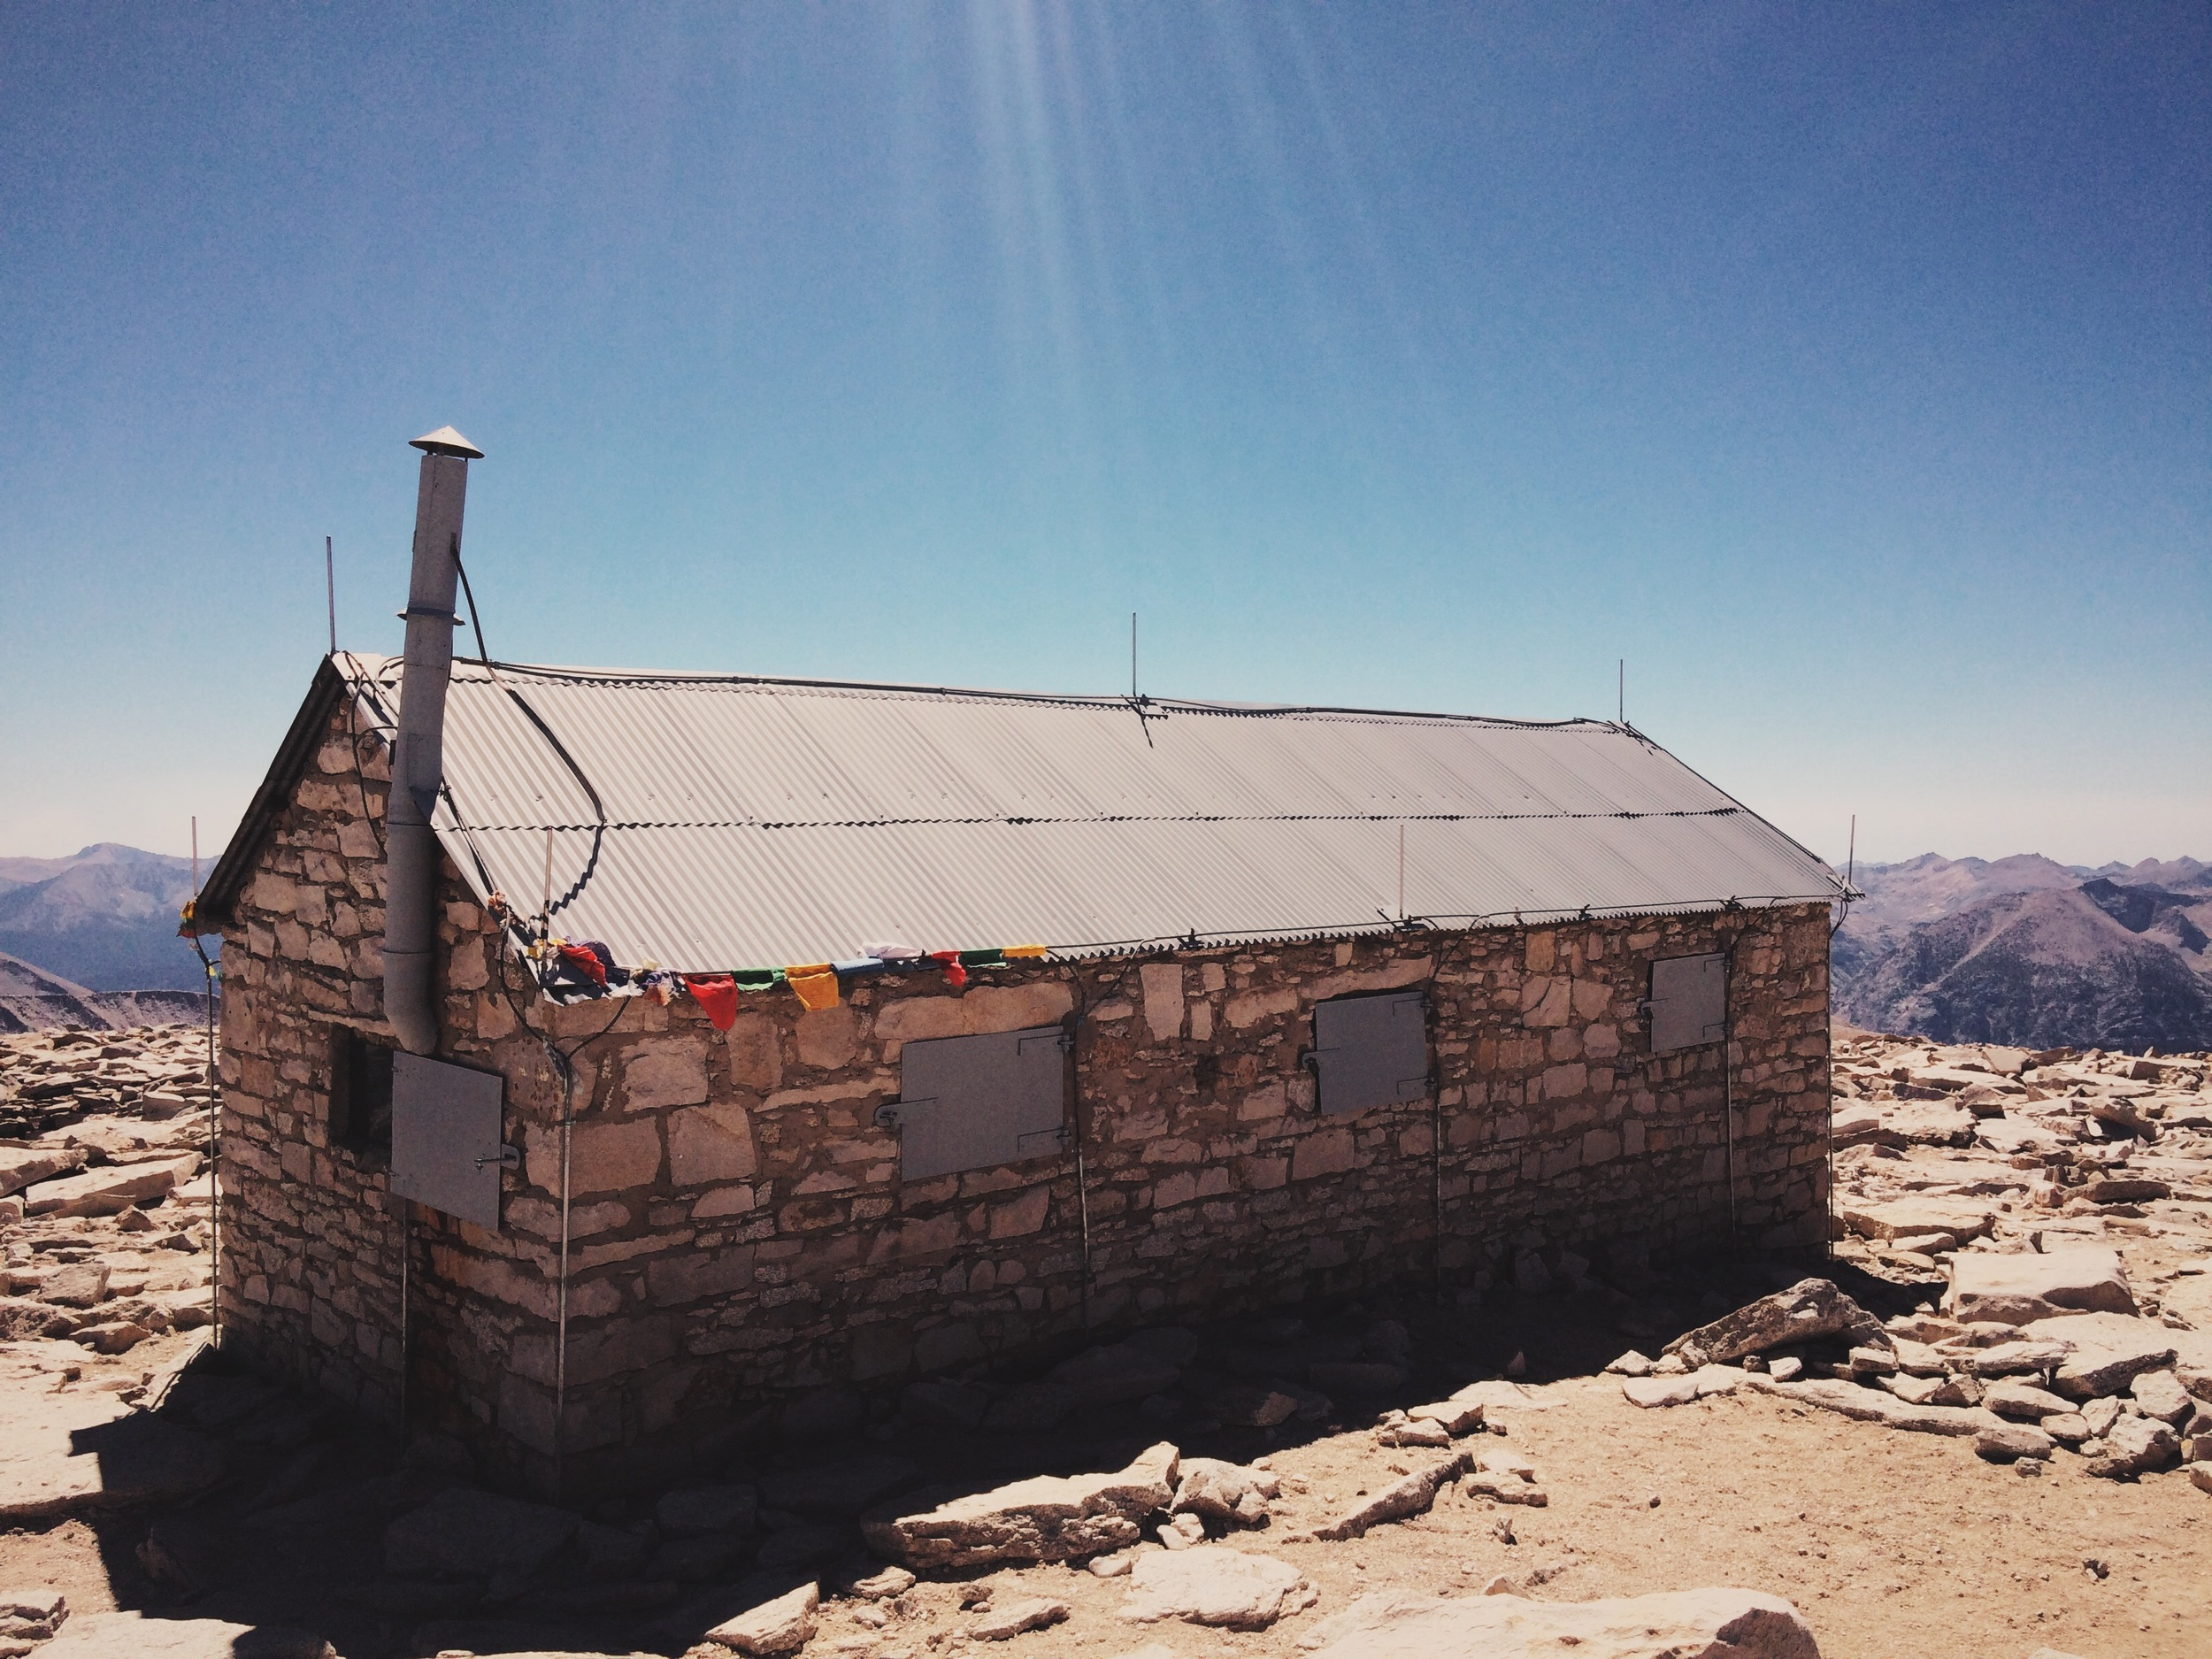 The summit shelter, built by the Smithsonian Institute in 1909.